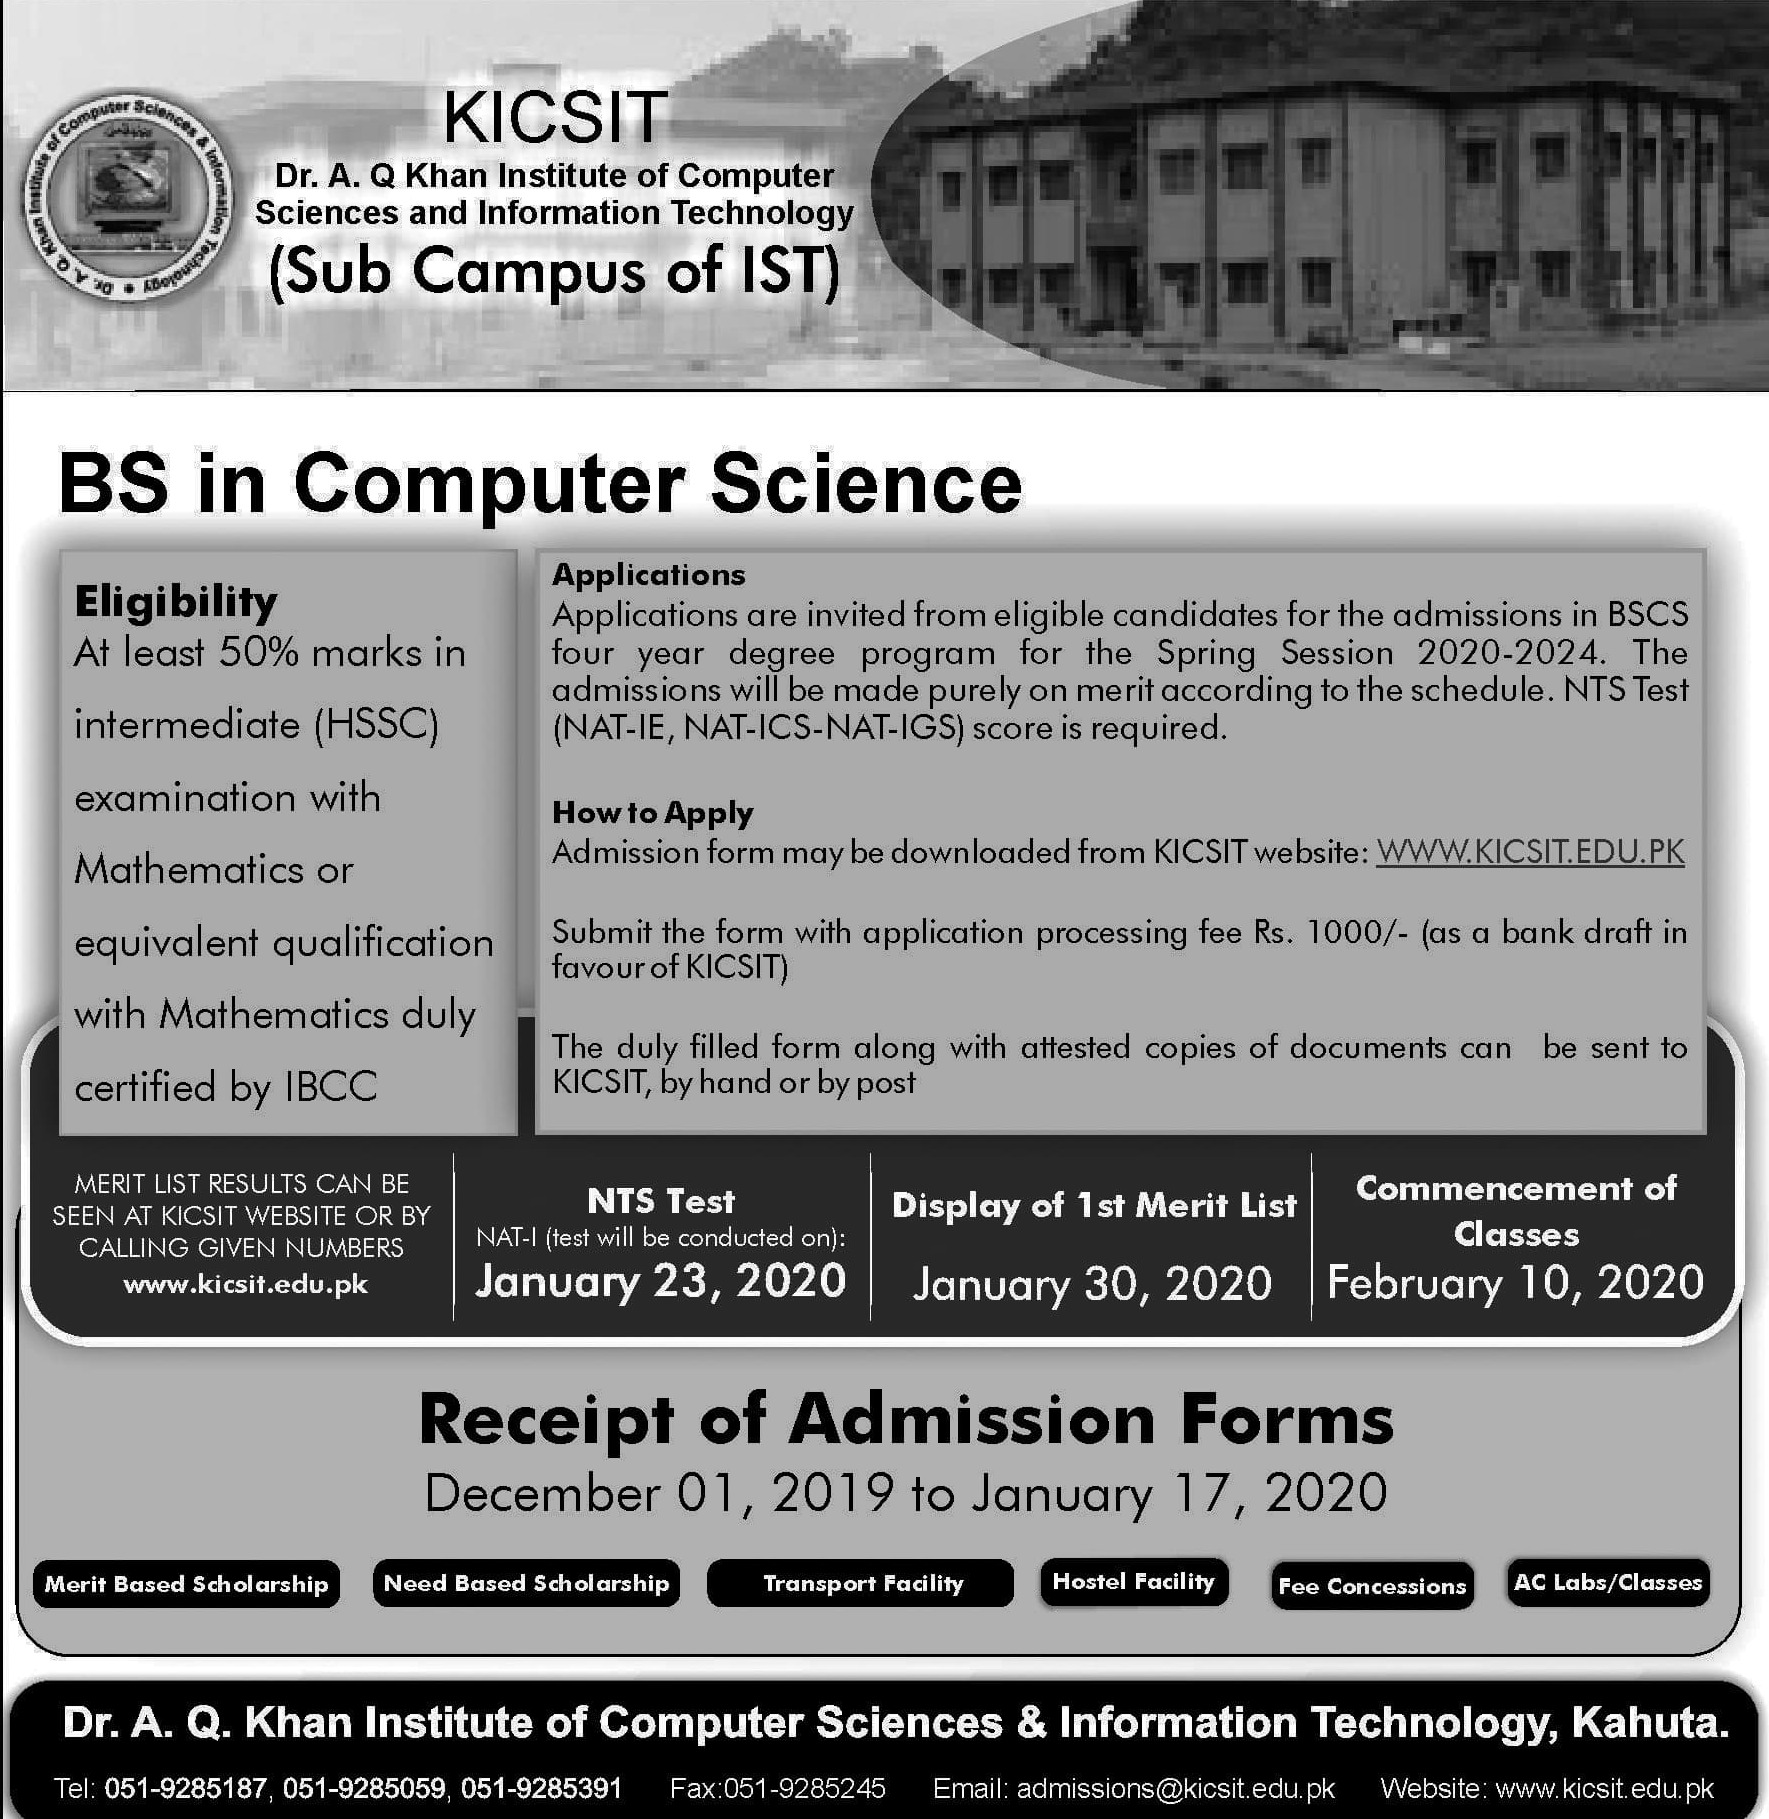 KICSIT Admission Spring 2020 NTS Test Result  Dr. A.Q Khan Institute of Computer Sciences and Information Technology